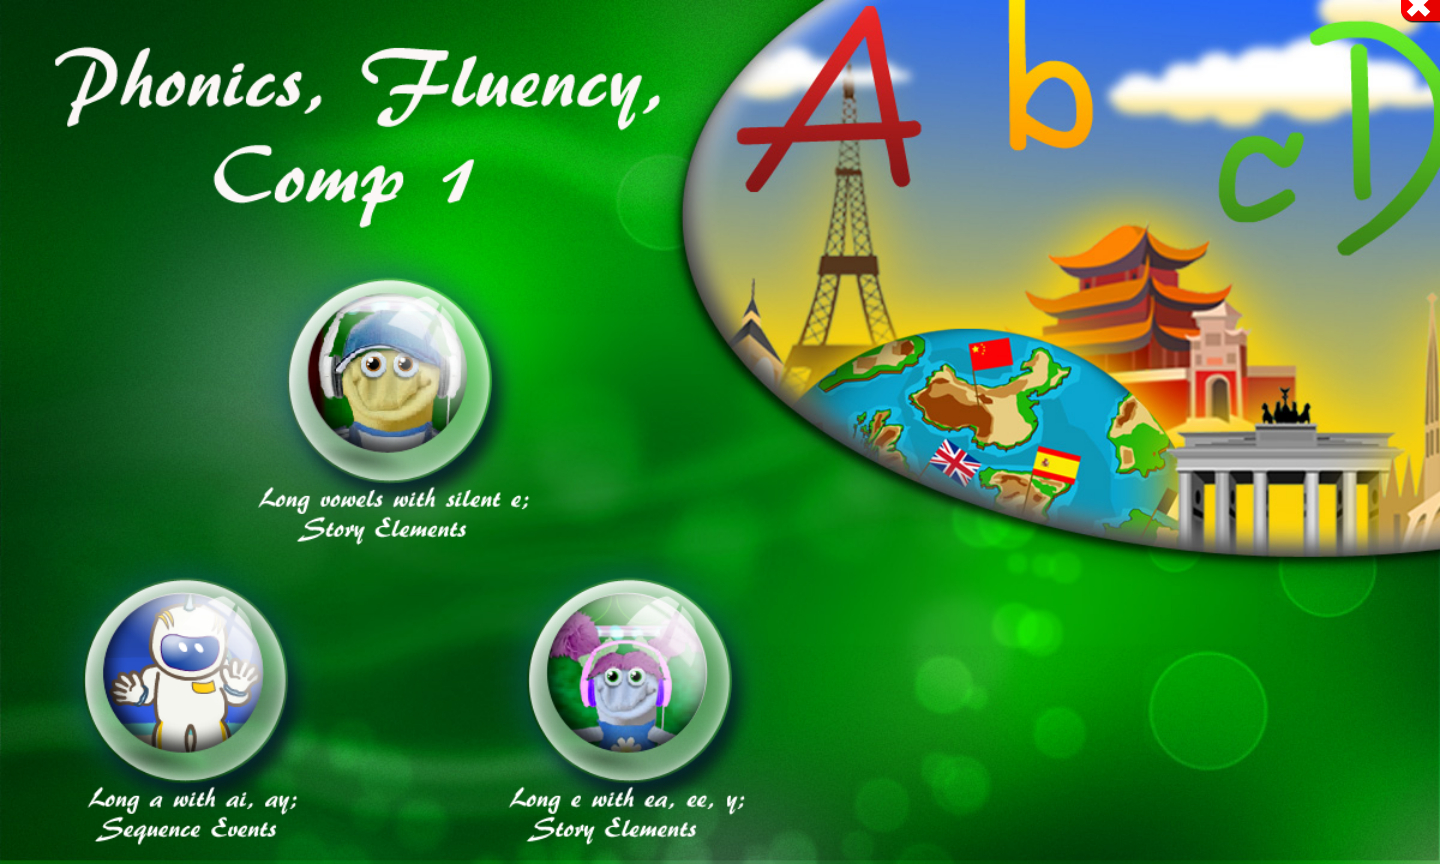 Phonics, Fluency, Comp:1